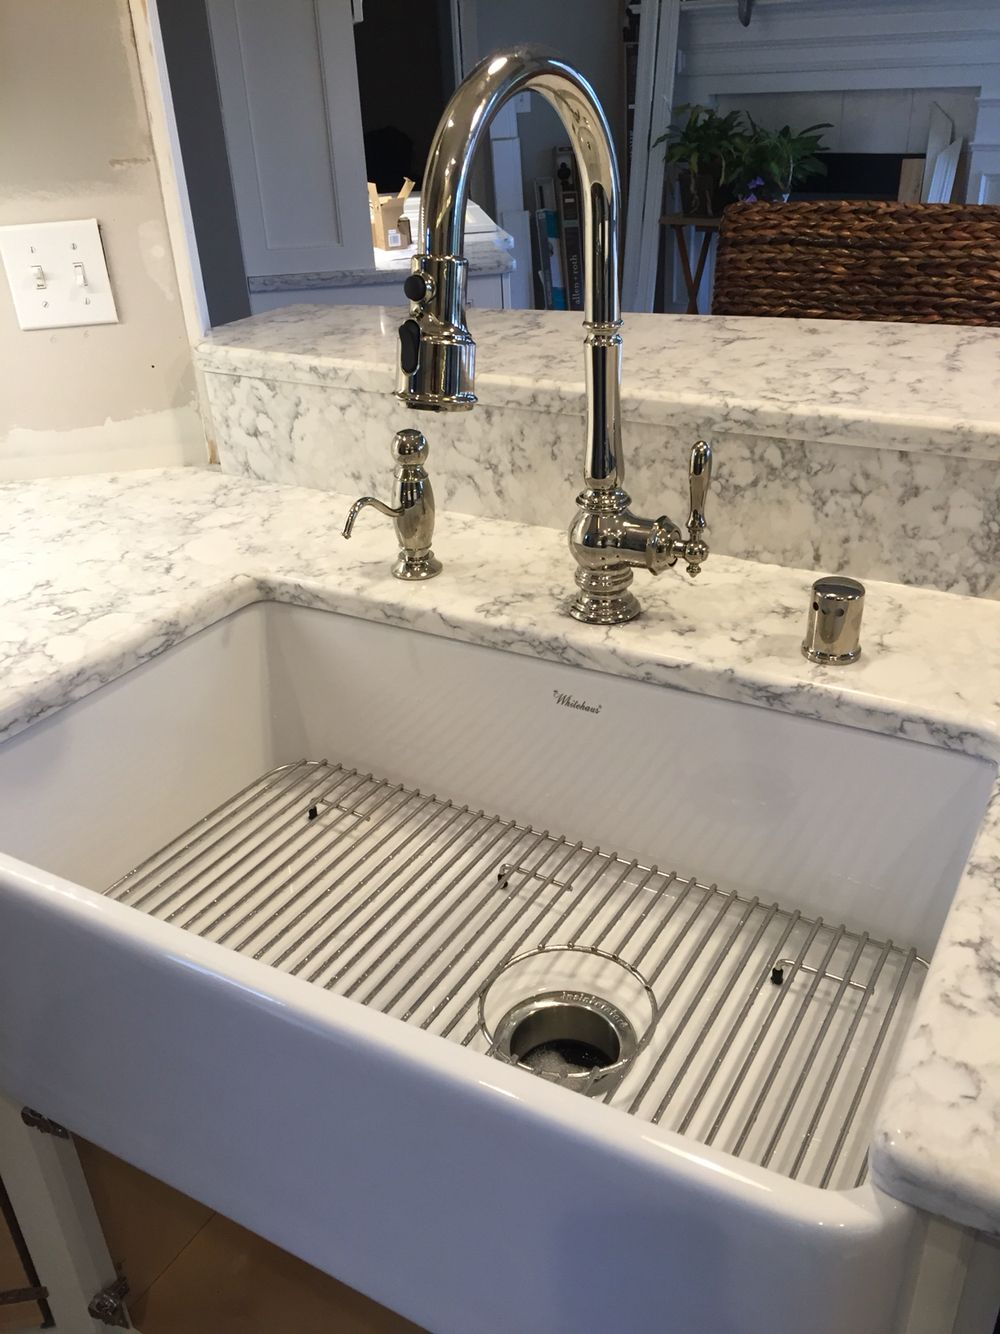 lowes kitchen appliances ella's stage 1 kohler artifacts faucet w/ whitehaus farmhouse sink | mom ...